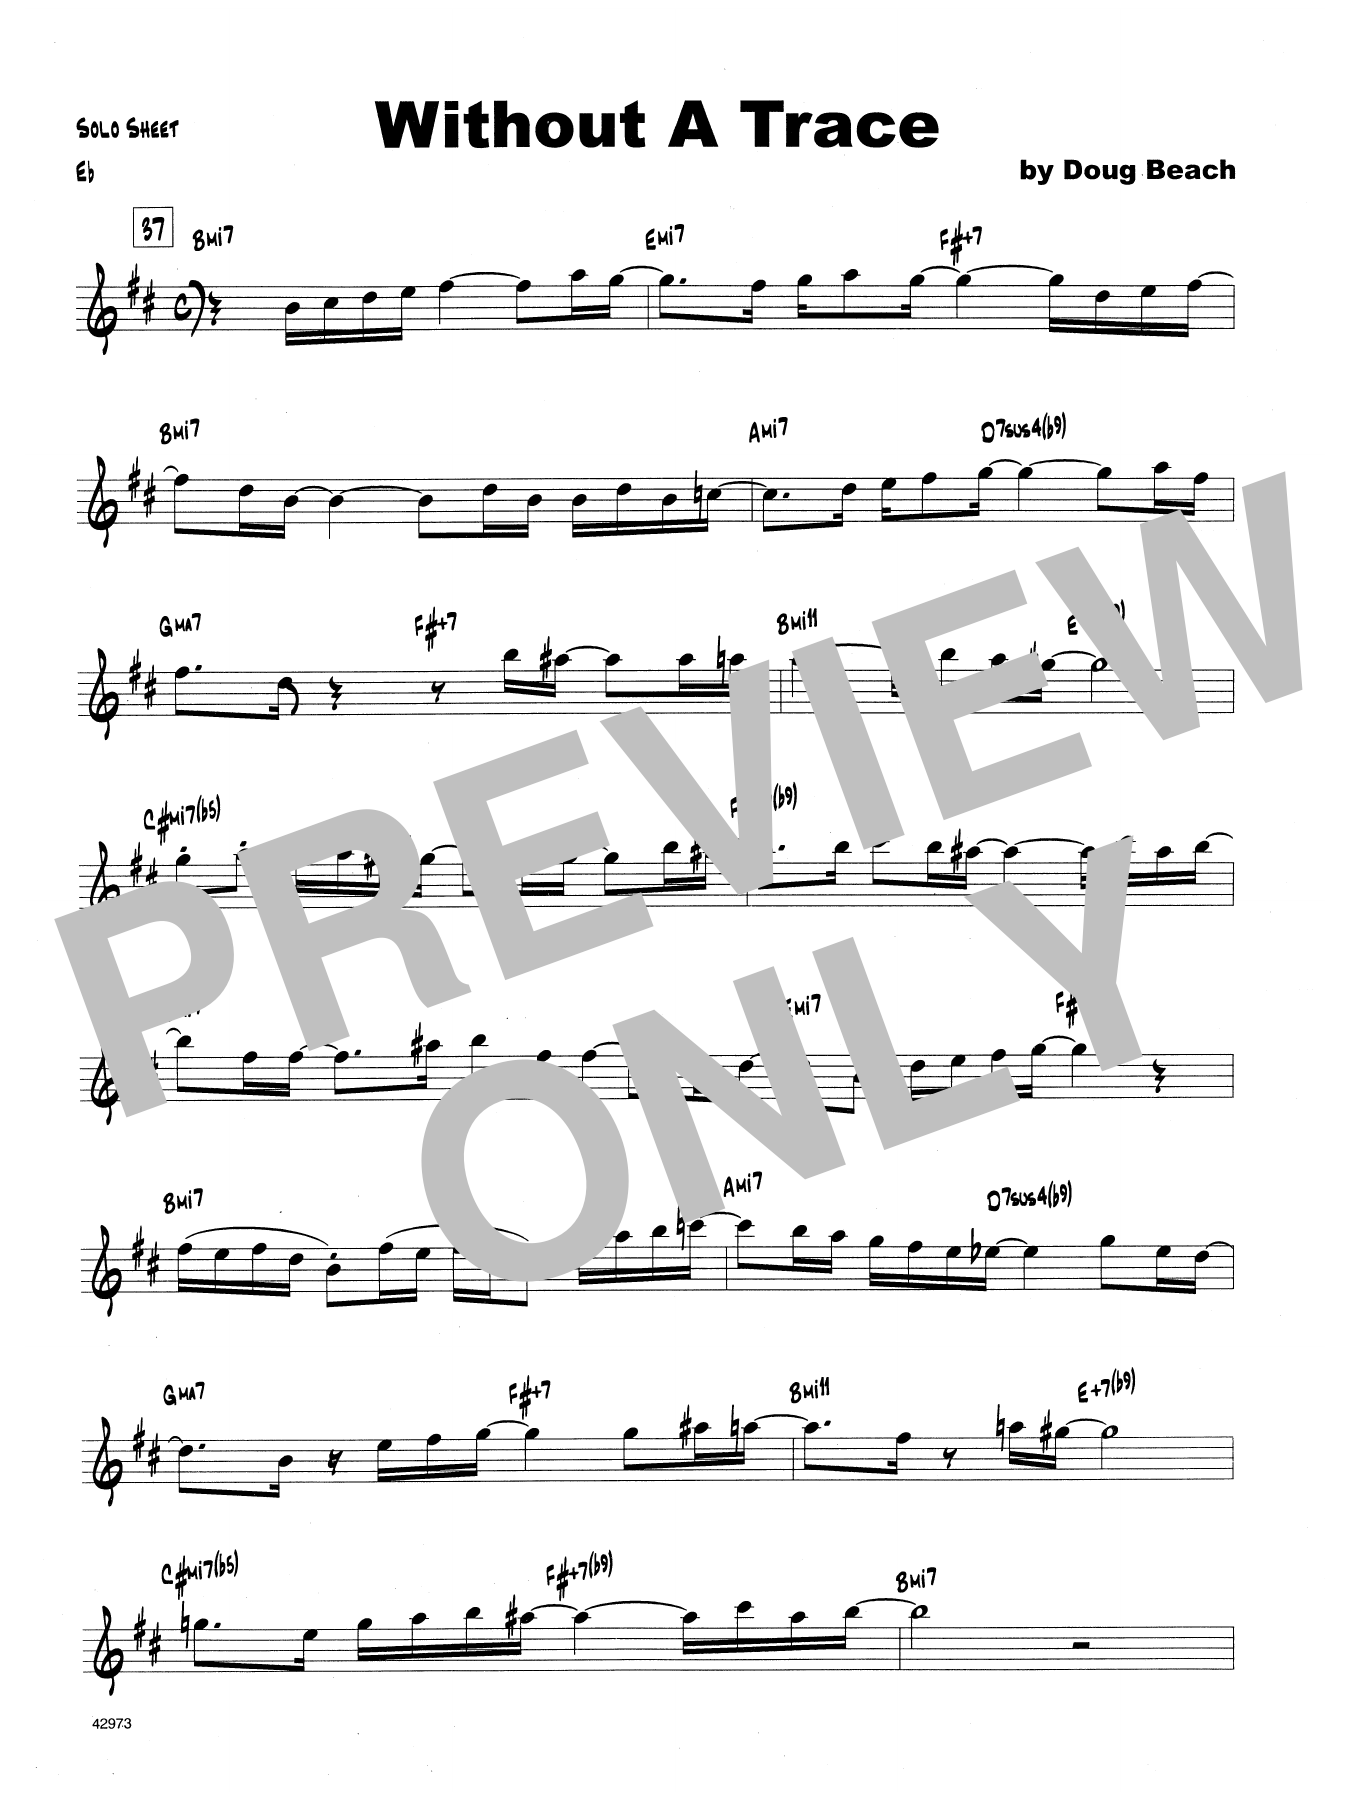 Without A Trace - Solo Sheet - Trombone